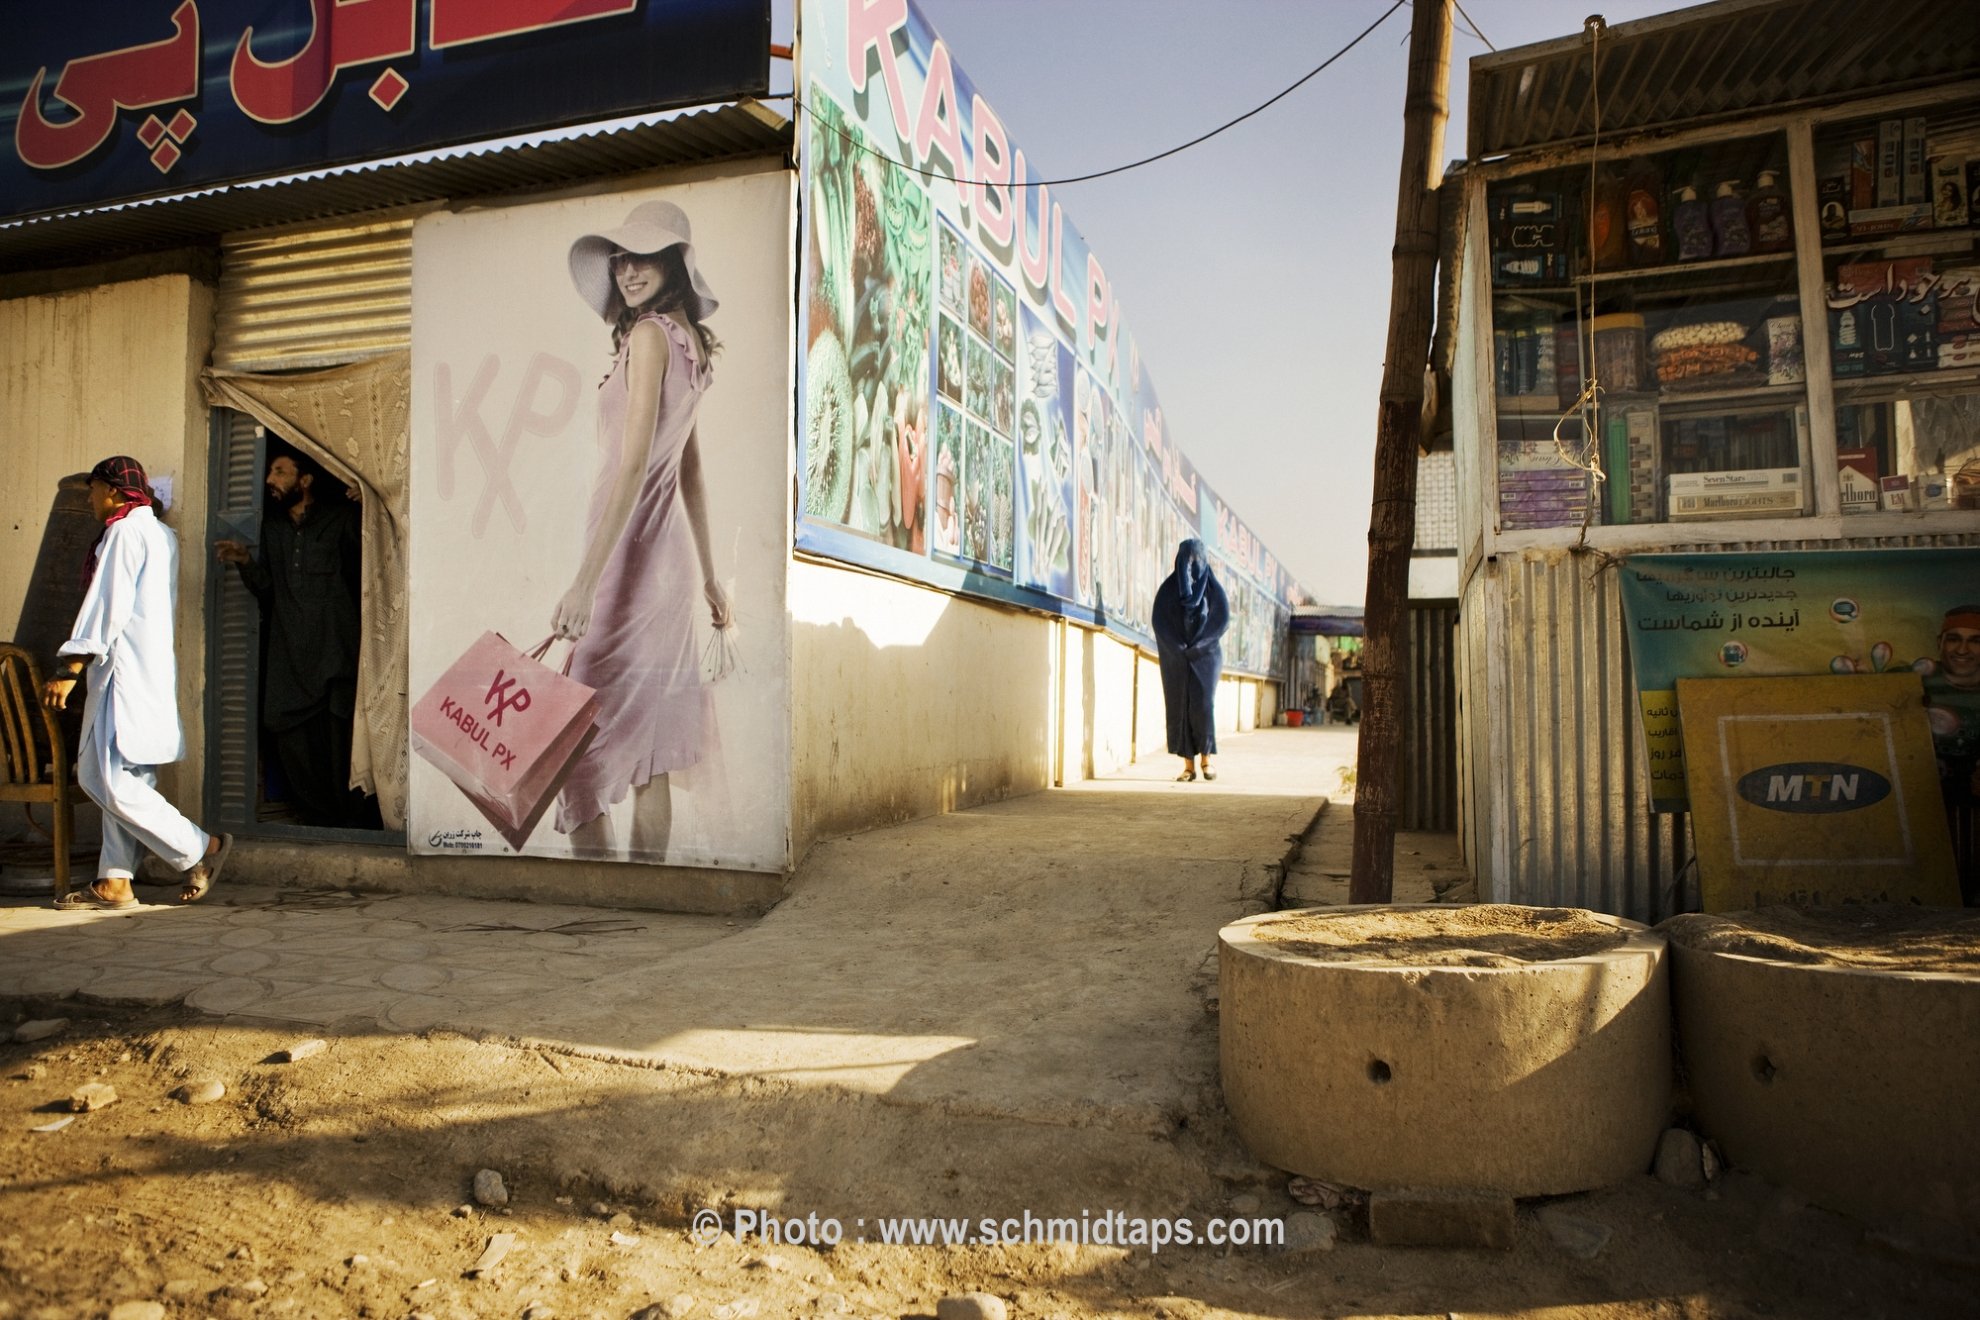 The modern and the traditional meet in Afghanistan. Photo: Lars Schmidt, 2010-'13